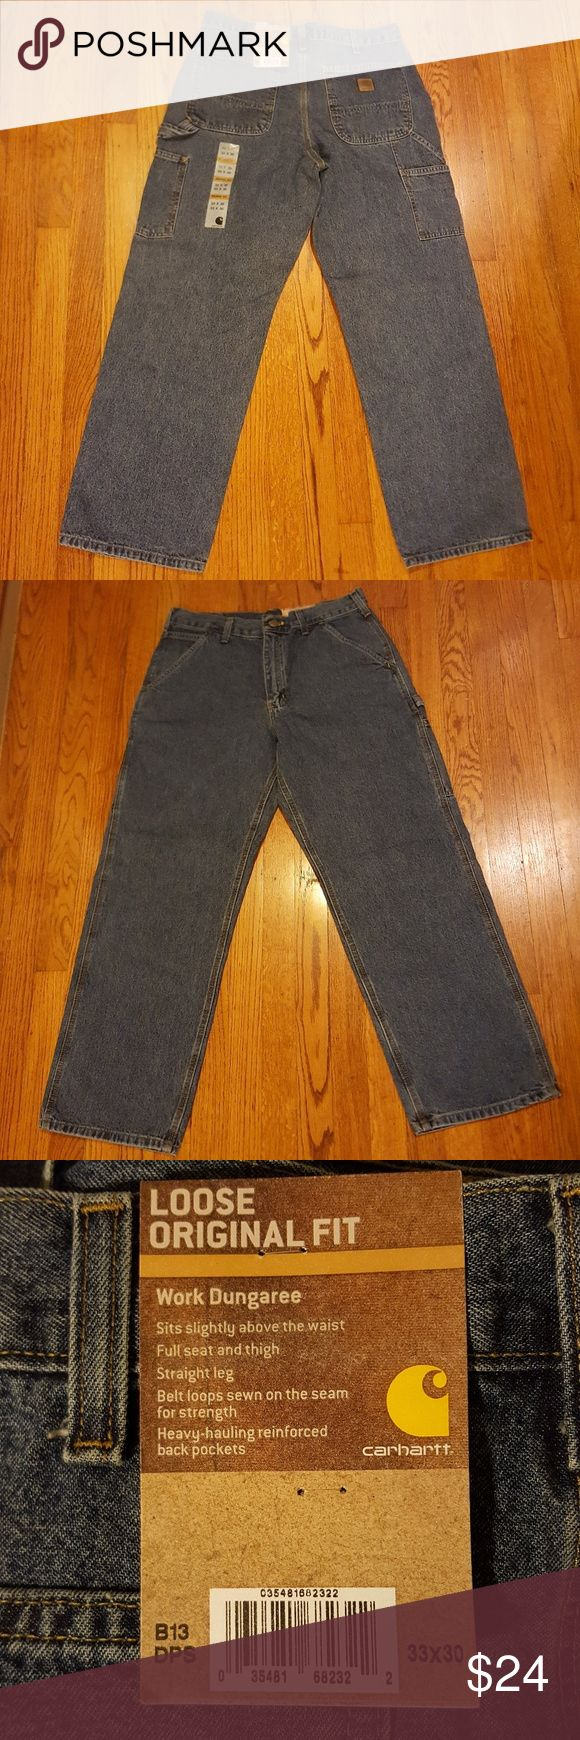 Carhartt Mens Jeans New. Size 33 × 30. Loose original dungaree fit. Straight leg. 100% cotton. These would make great work jeans. Carhartt Jeans